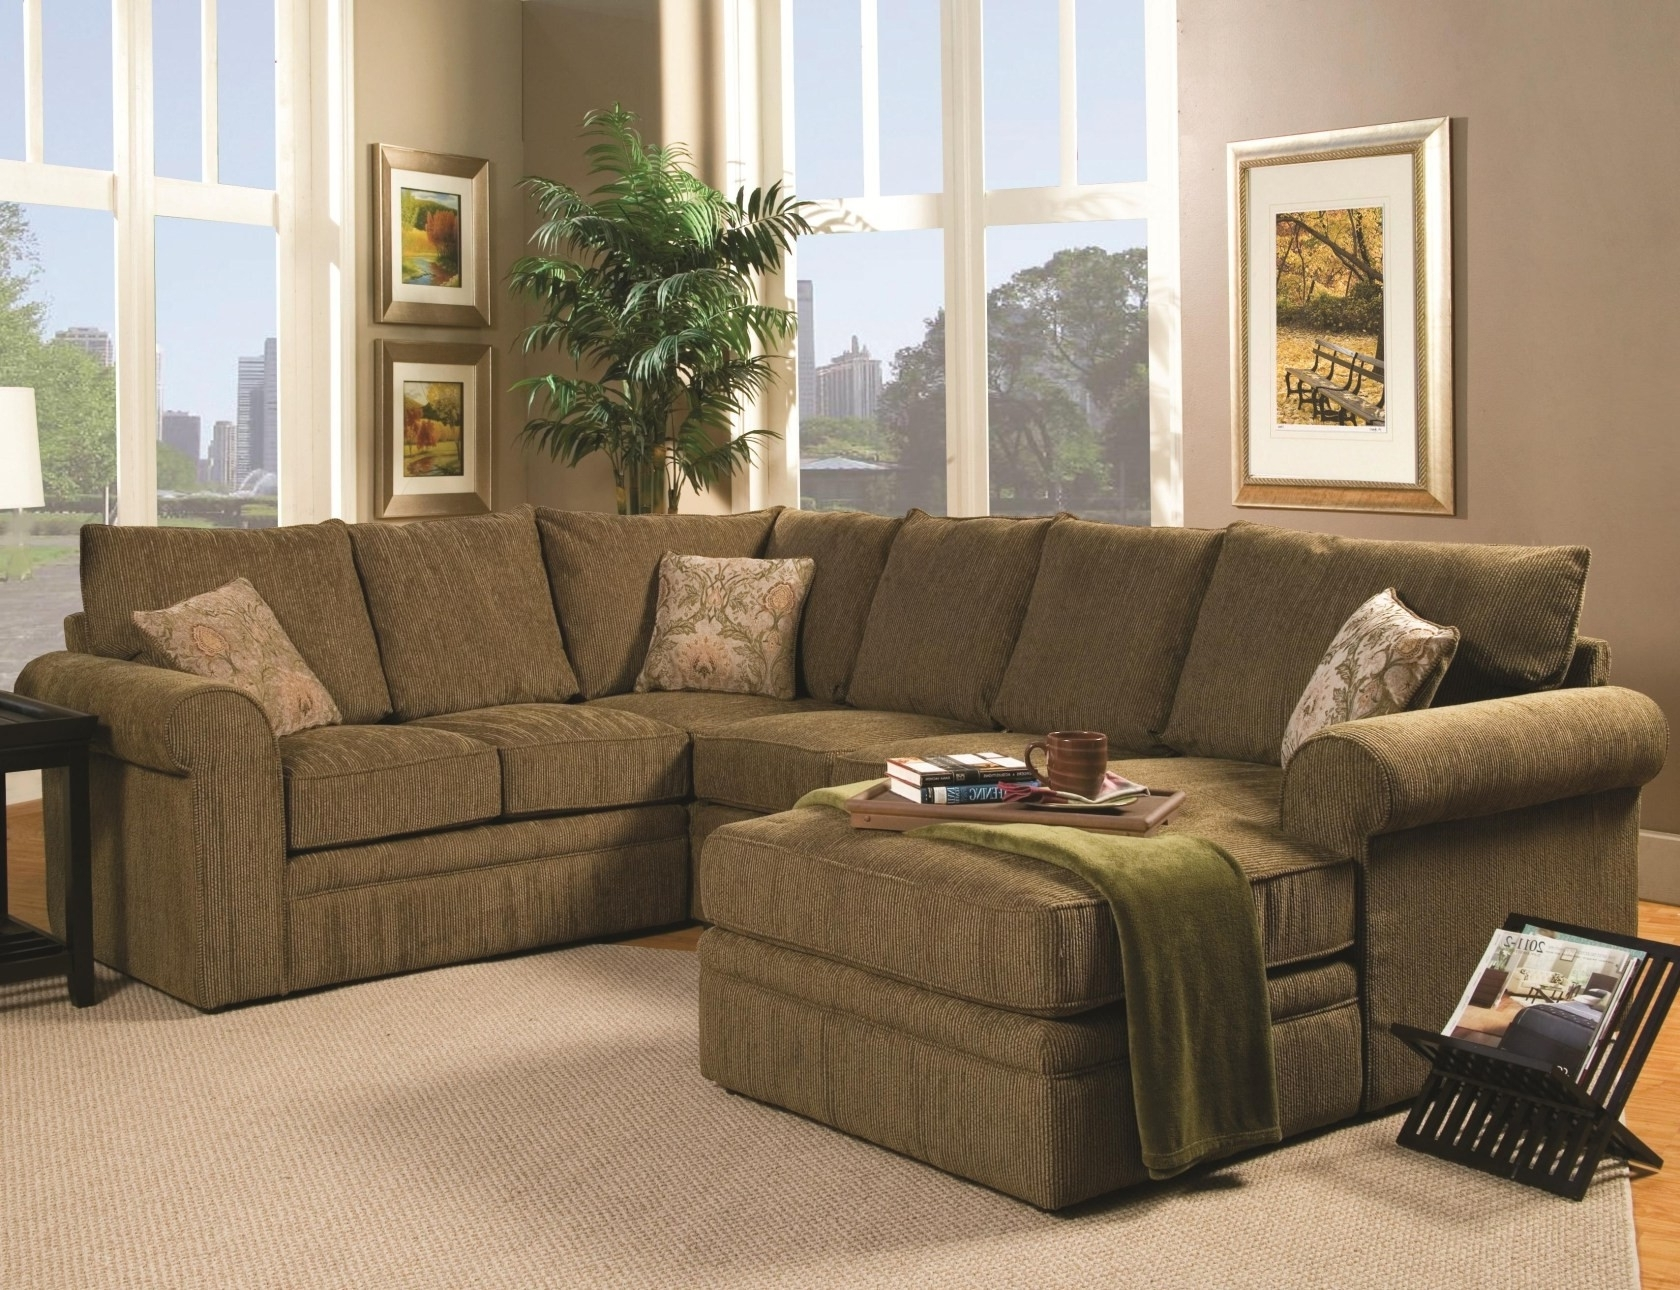 Comfortable Sectional Sofas Within Most Recently Released Most Comfortable Sectional Sofa With Chaise (View 7 of 20)